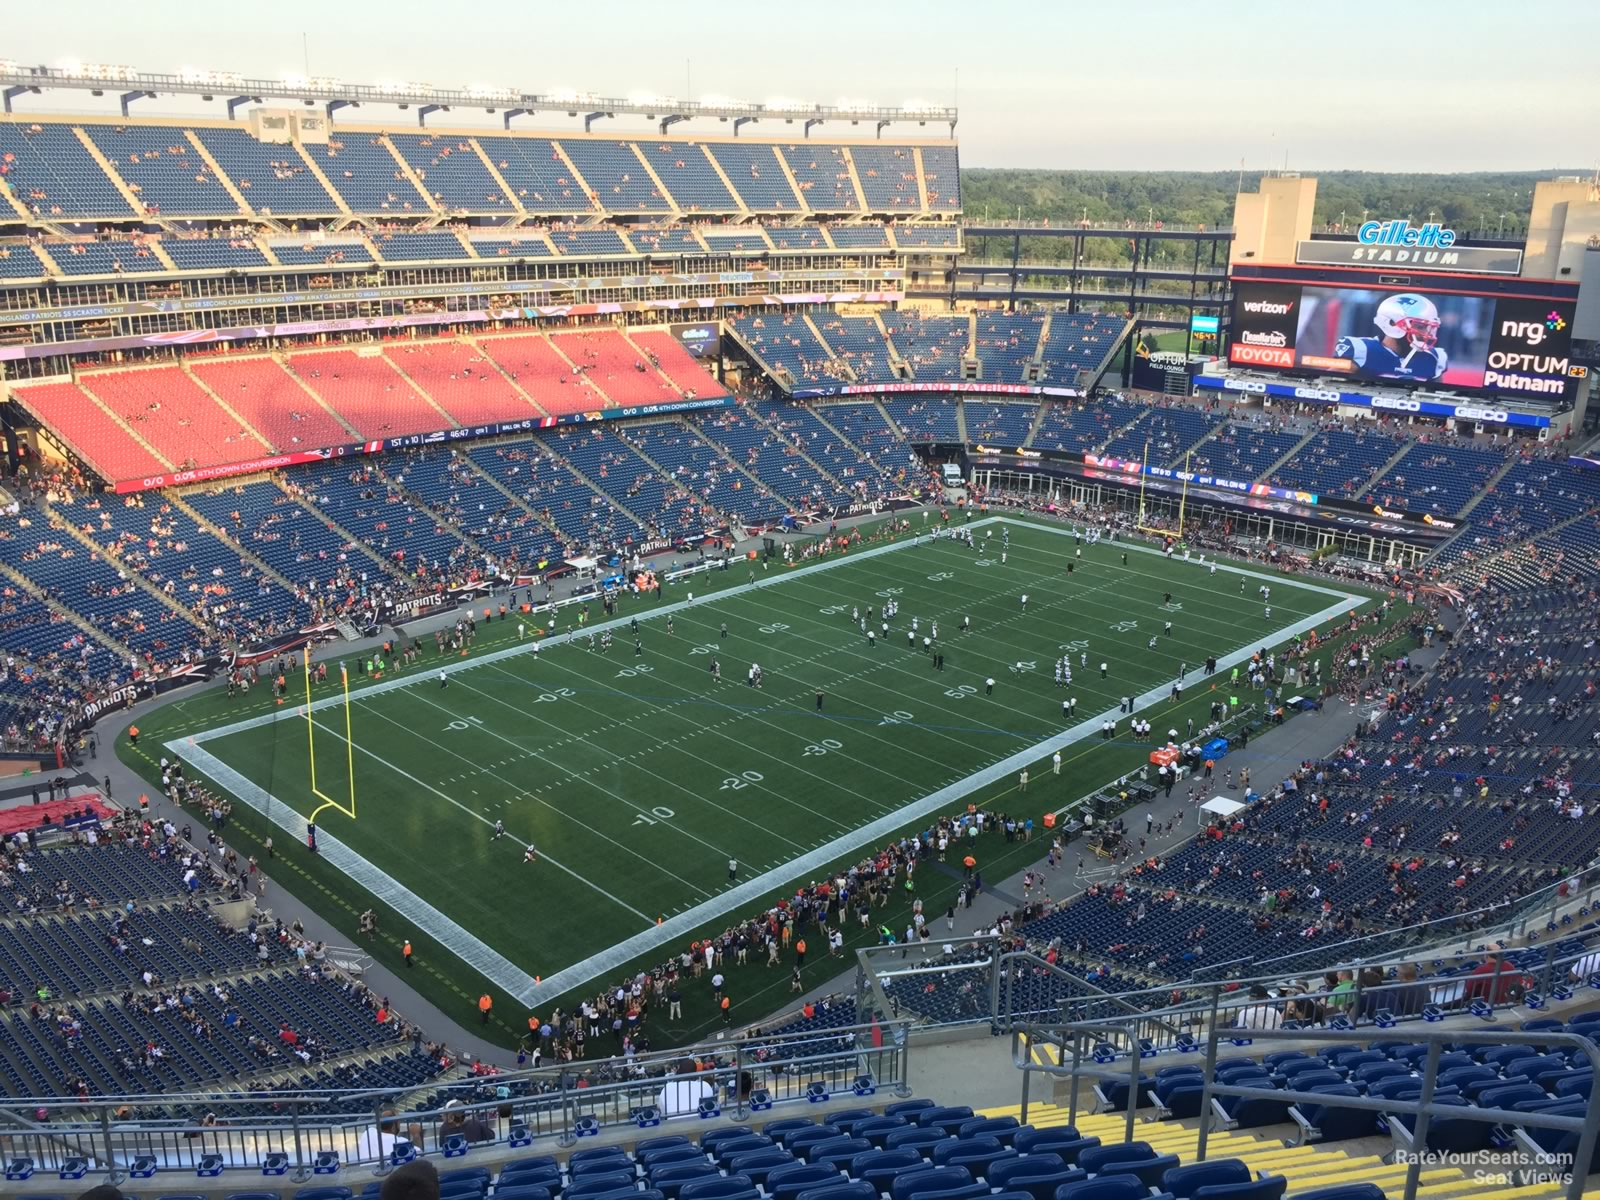 New England Patriots Seat View for Gillette Stadium Section 339, Row 19